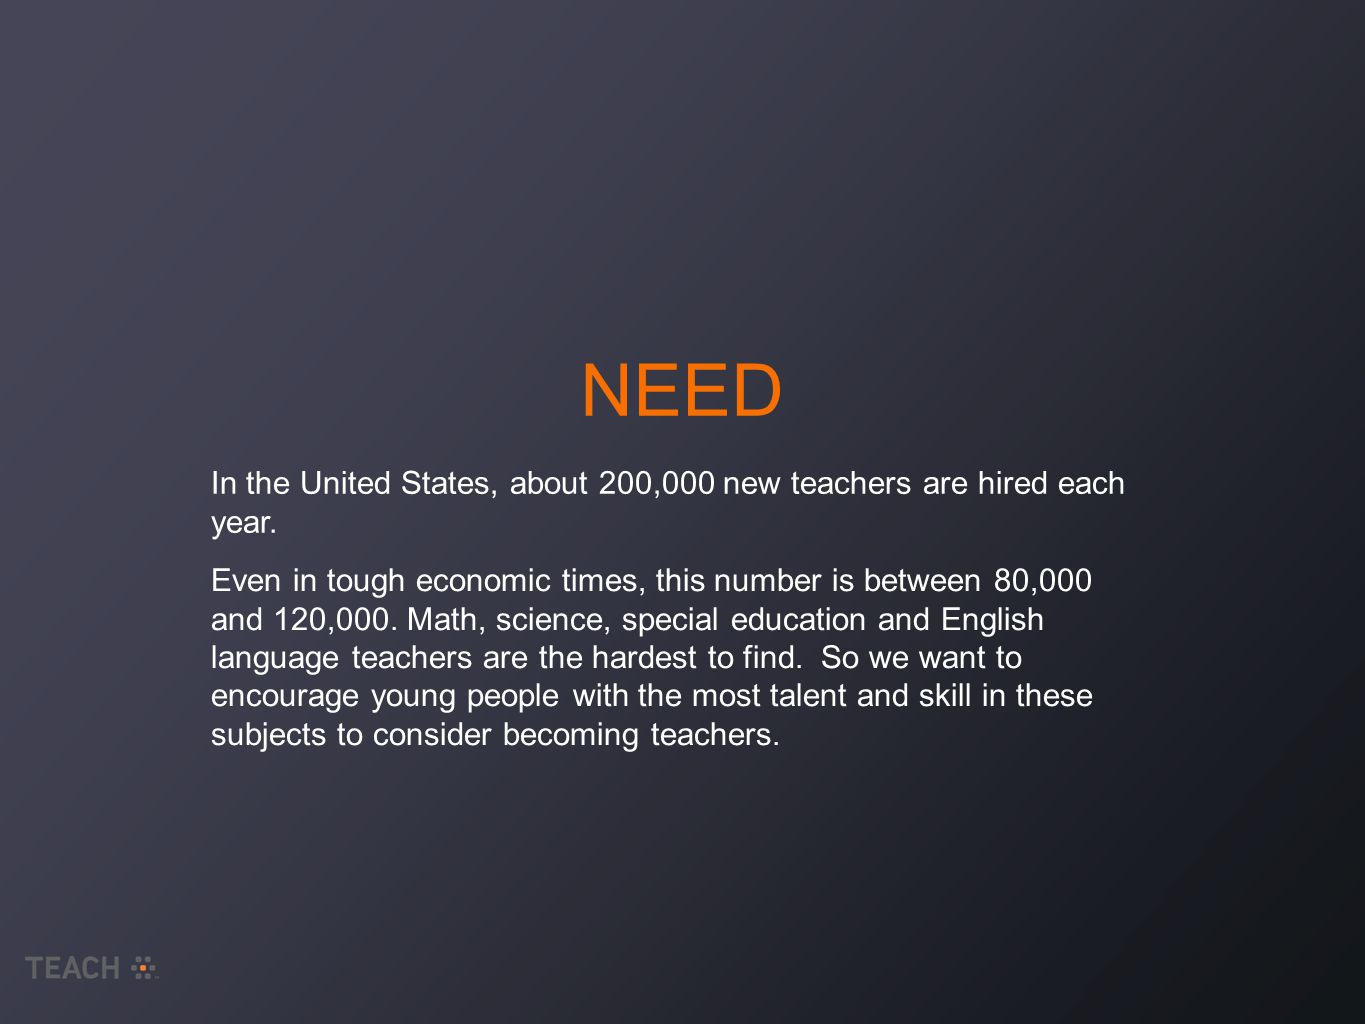 NEED In the United States, about 200,000 new teachers are hired each year.